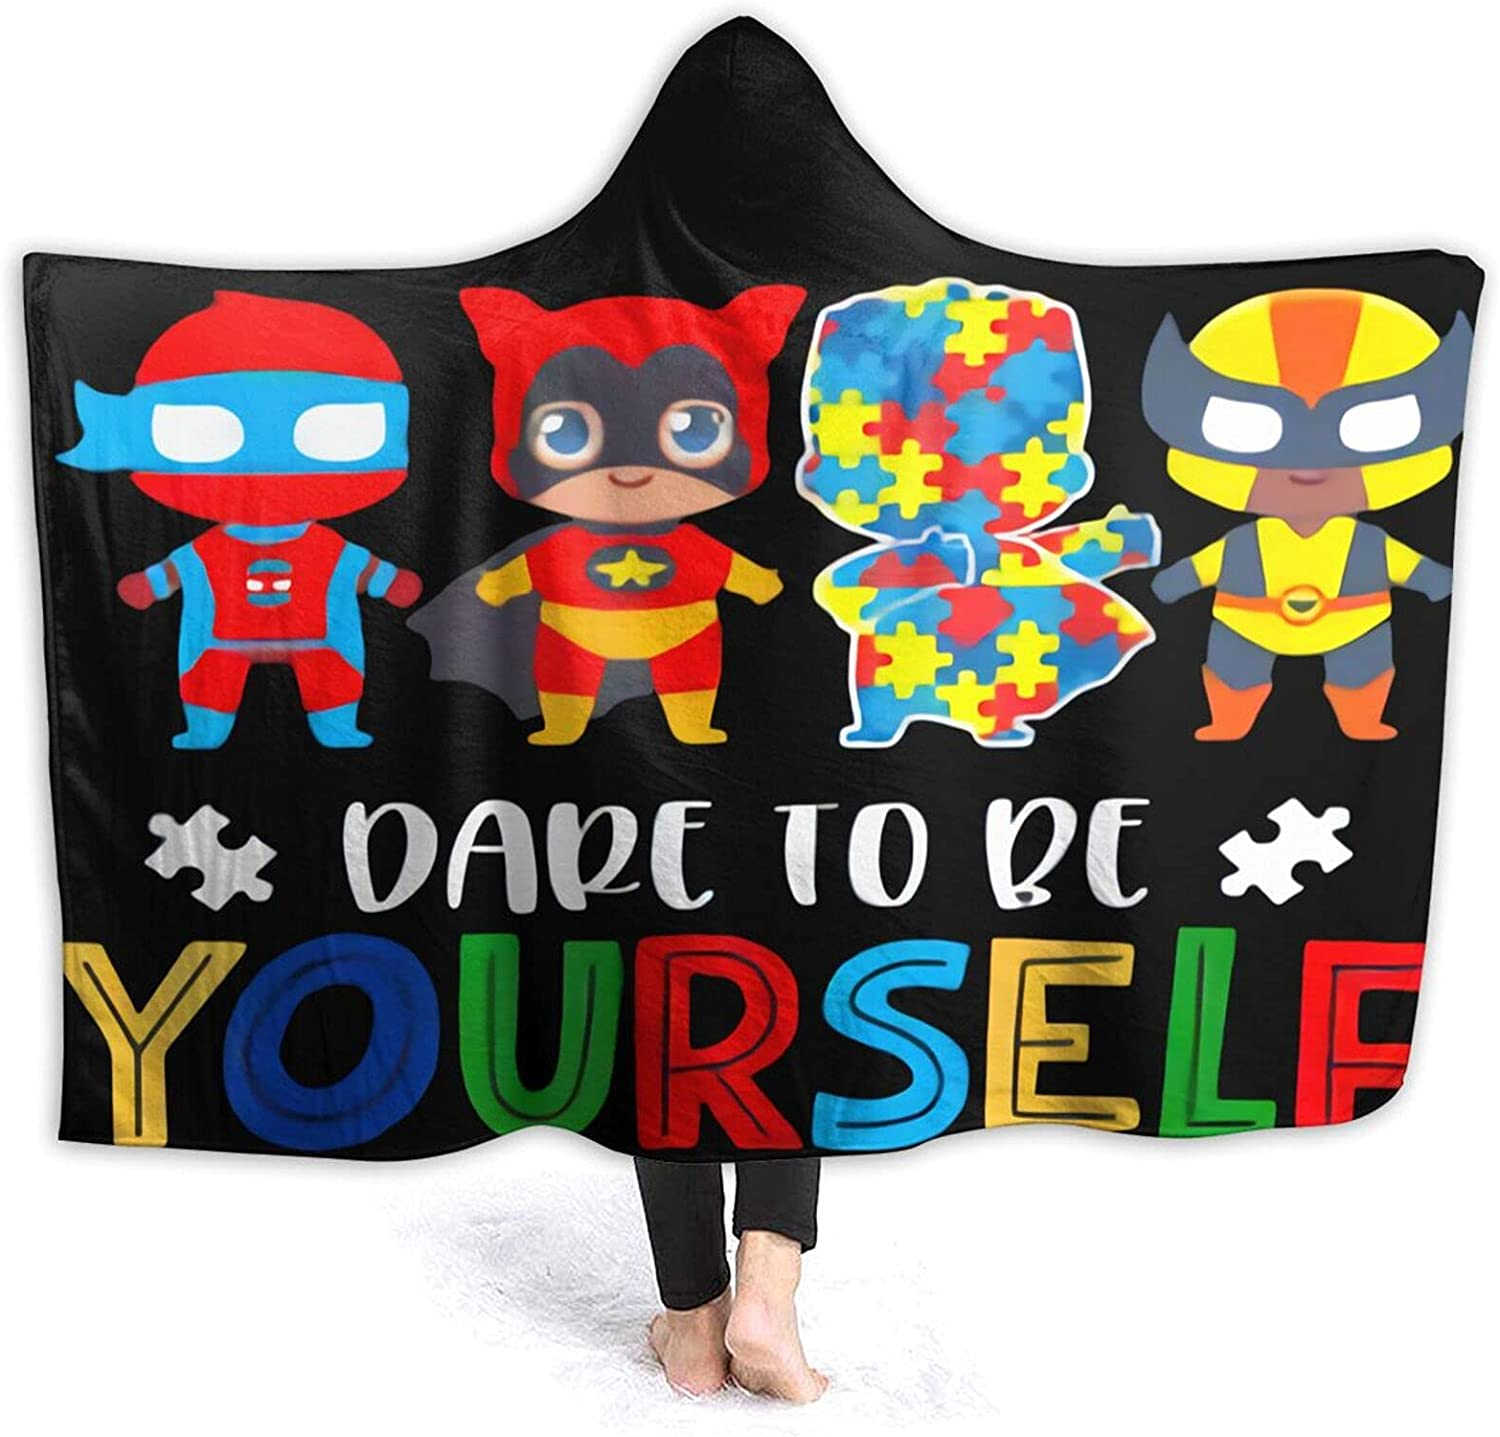 Dare to Be Yourself Detroit Mall Hooded Blanket New Shipping Free Blankets C Soft Wearable Warm